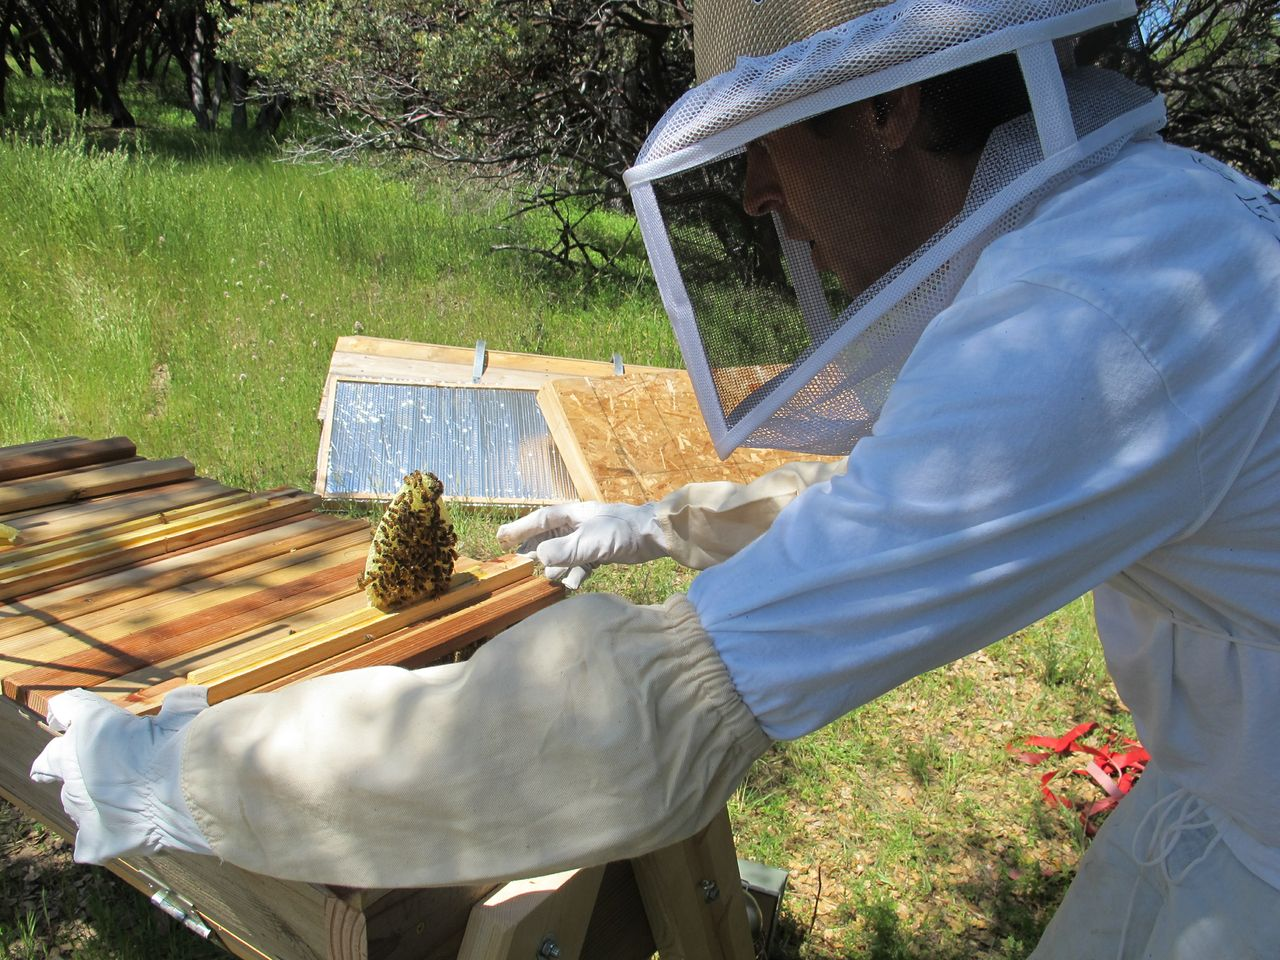 Bees - Doug Mendonca carefully examines the comb in the top bar bee hive - photo courtesy Doug Mendonca